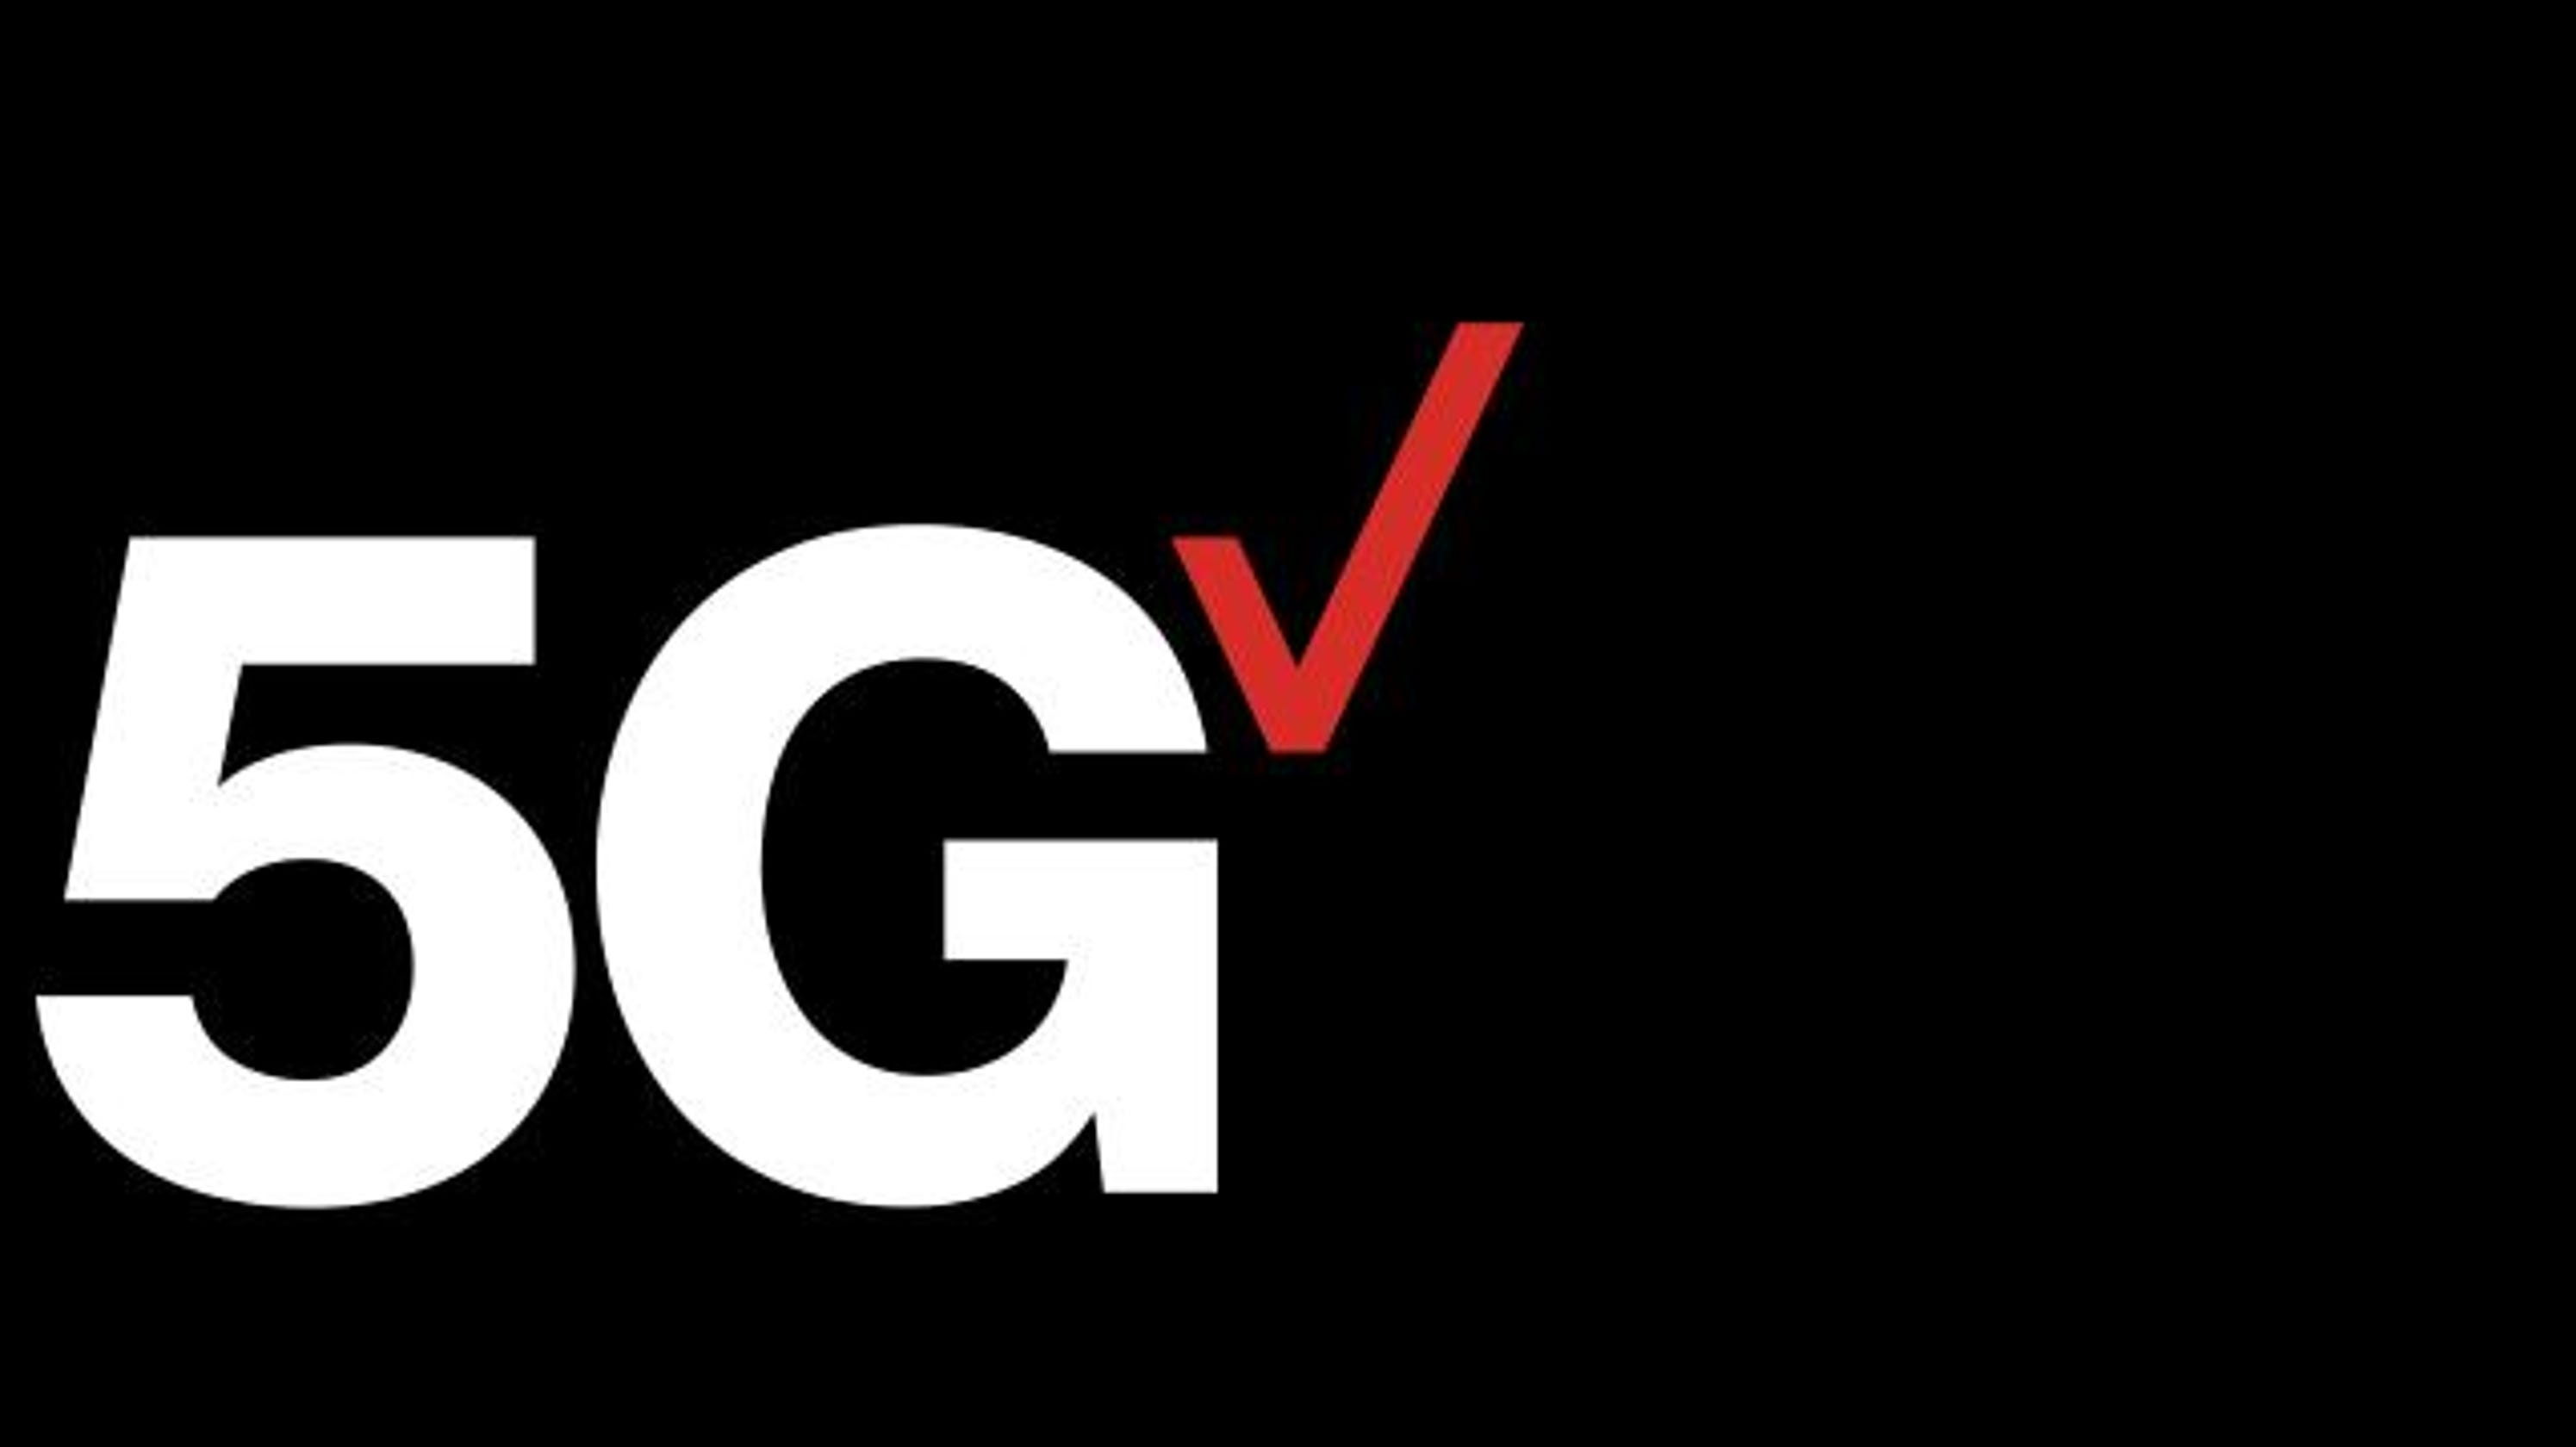 Have a big 5G idea? It could get you $1 million from Verizon